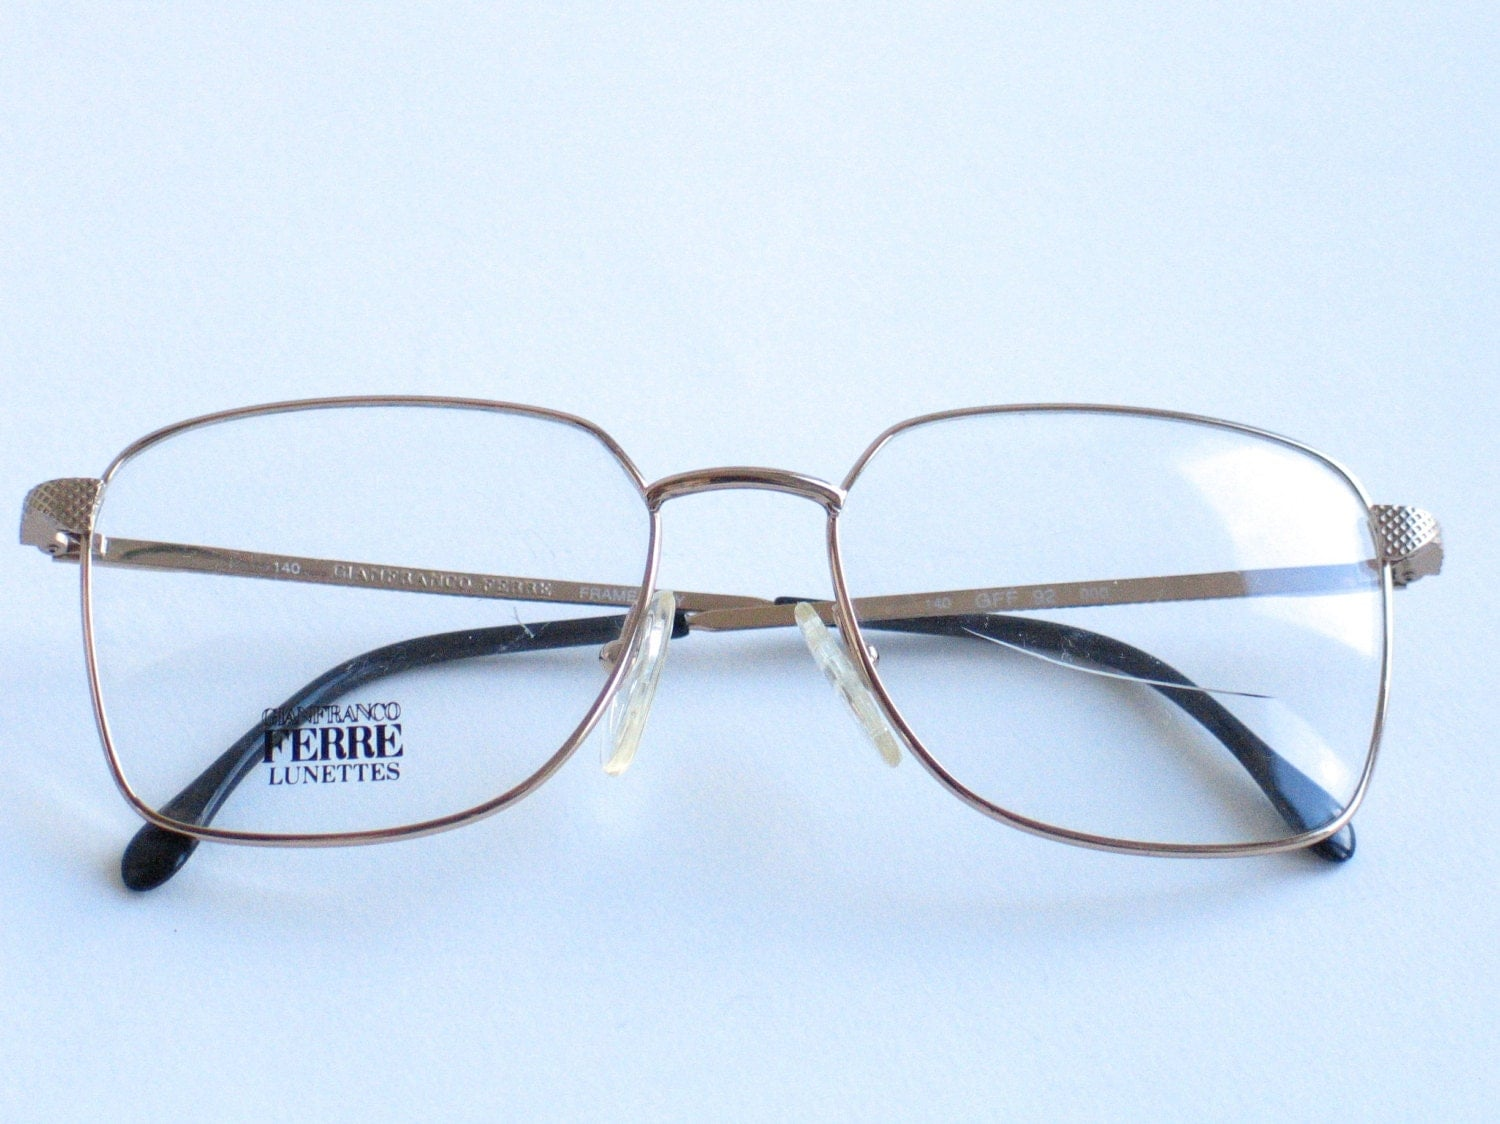 Gianfranco Ferre vintage men s eyeglasses frame. Deadstock ...